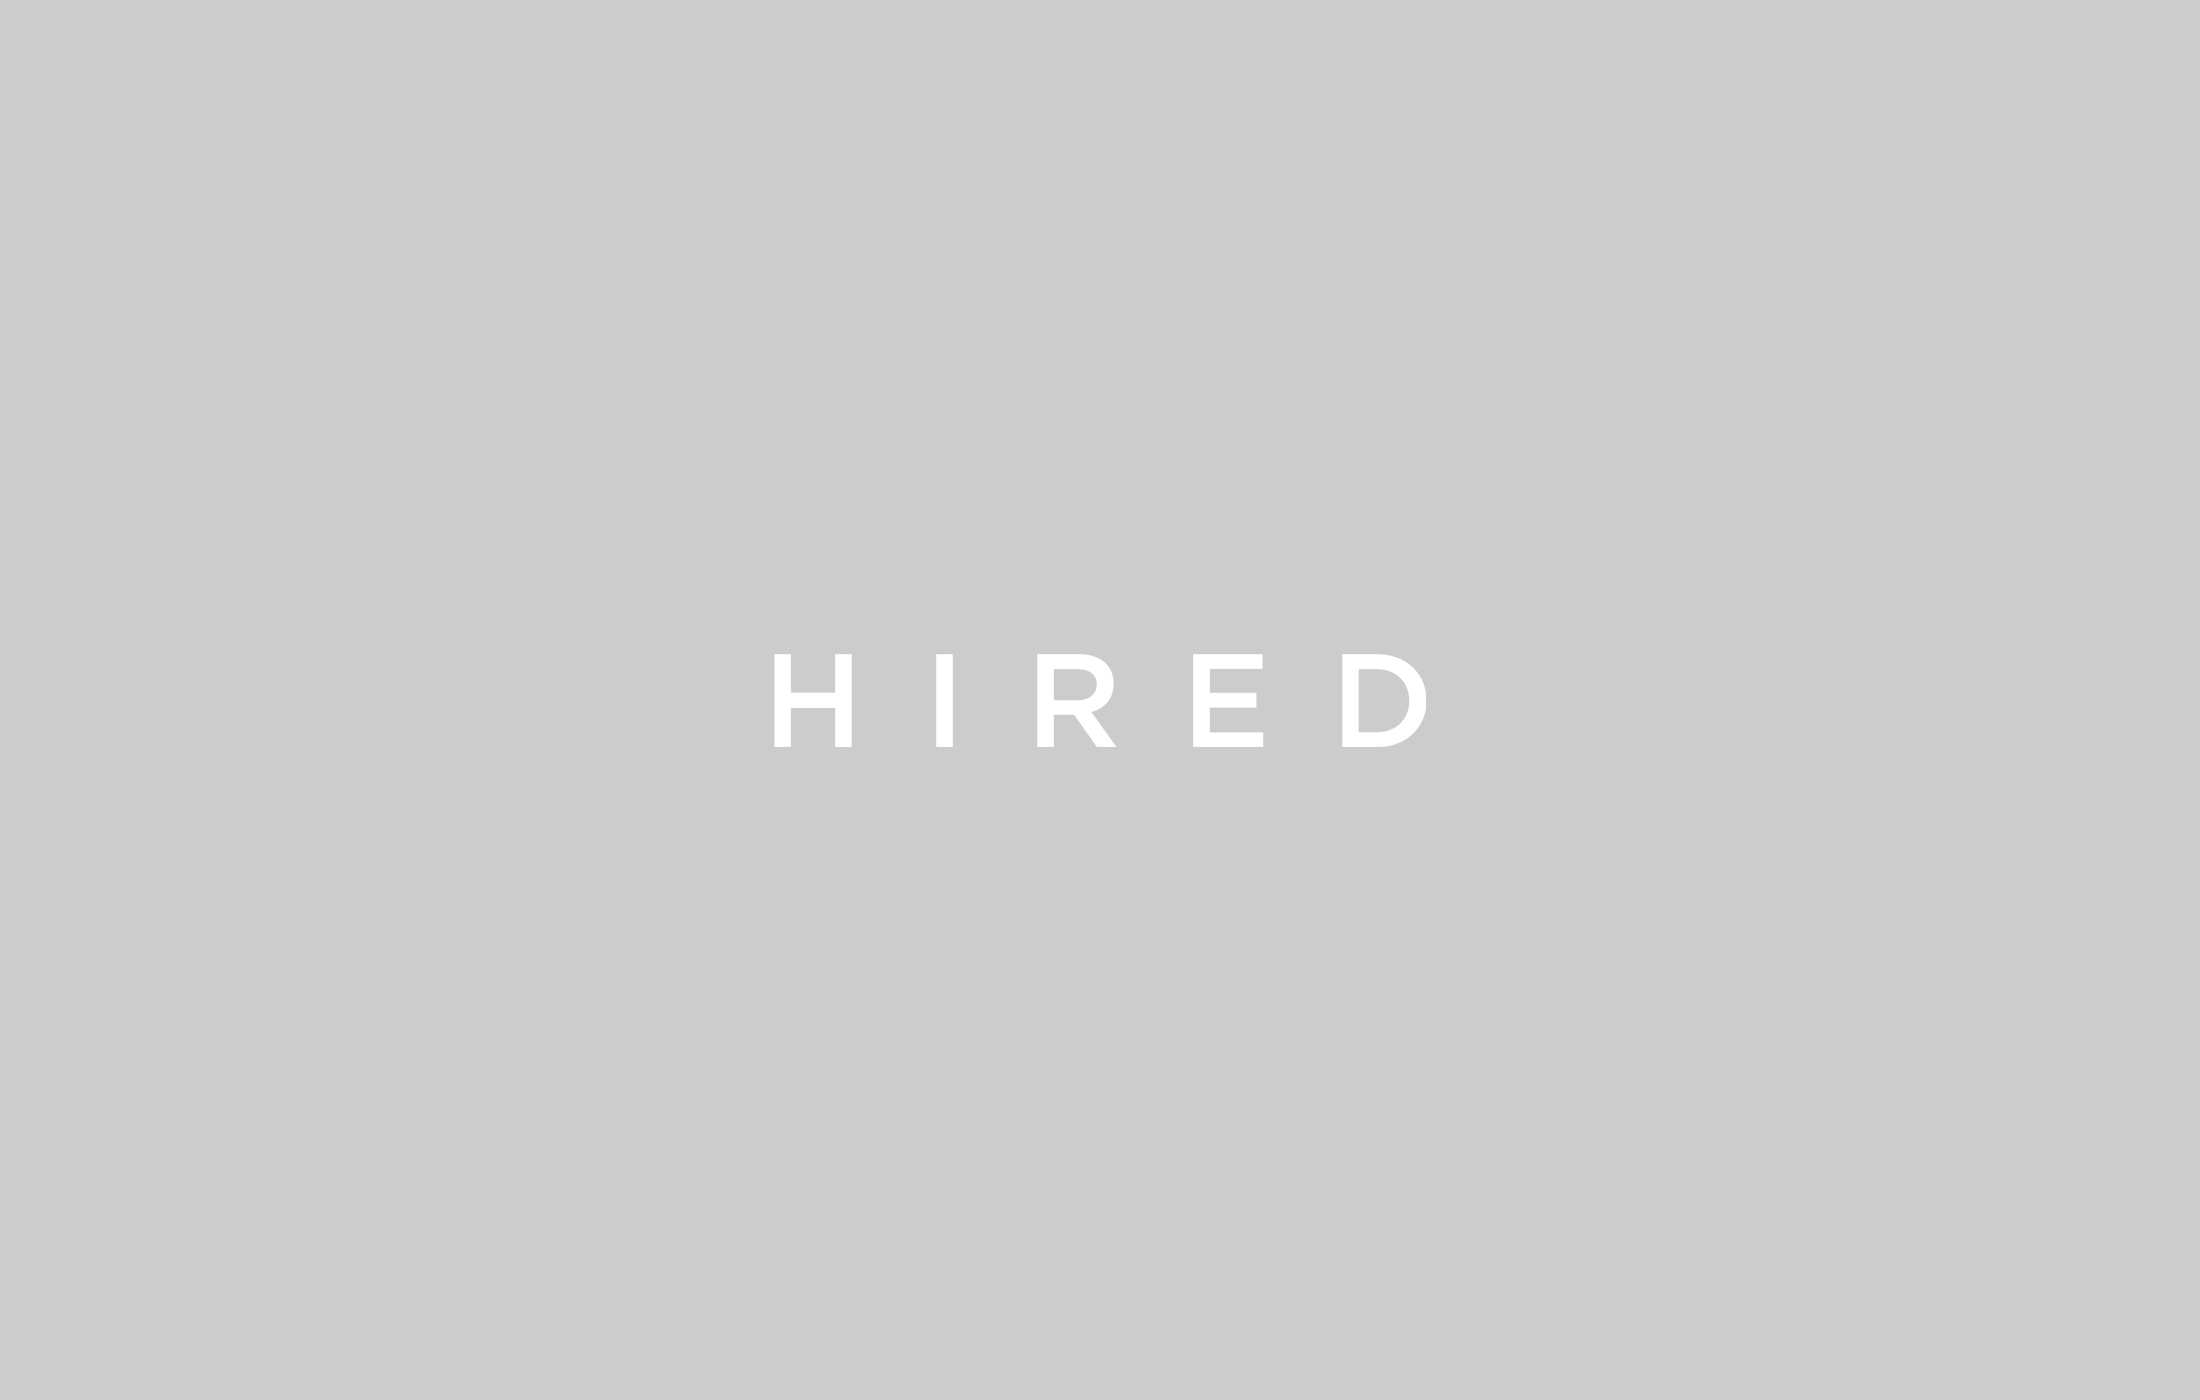 hired-launches-in-washington-d-c-facilitates-over-100m-in-job-offers